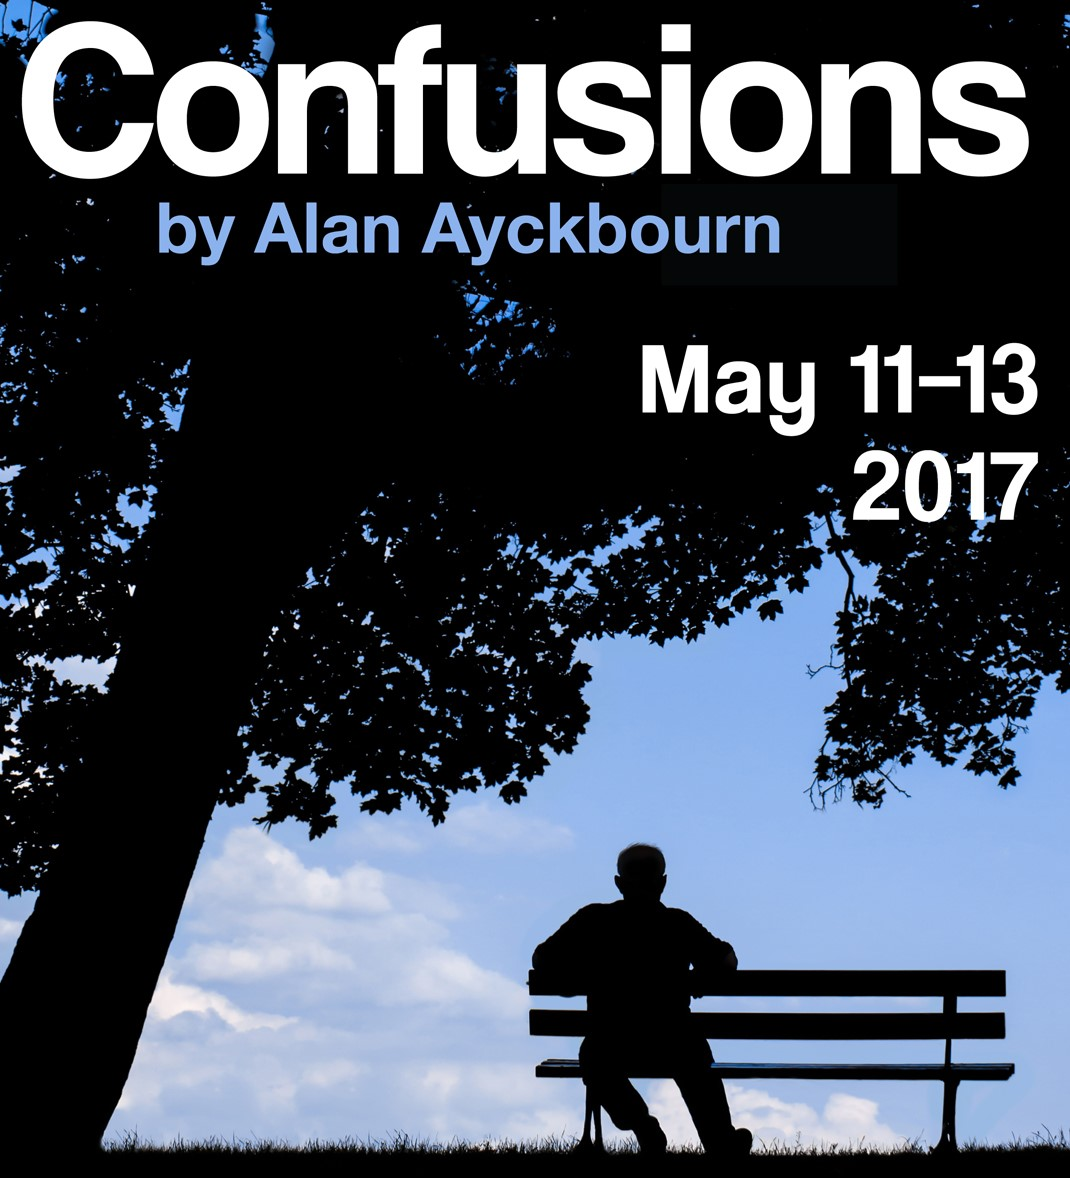 Confusions - a play by Alan Ayckbourn presented by The Downsview Players